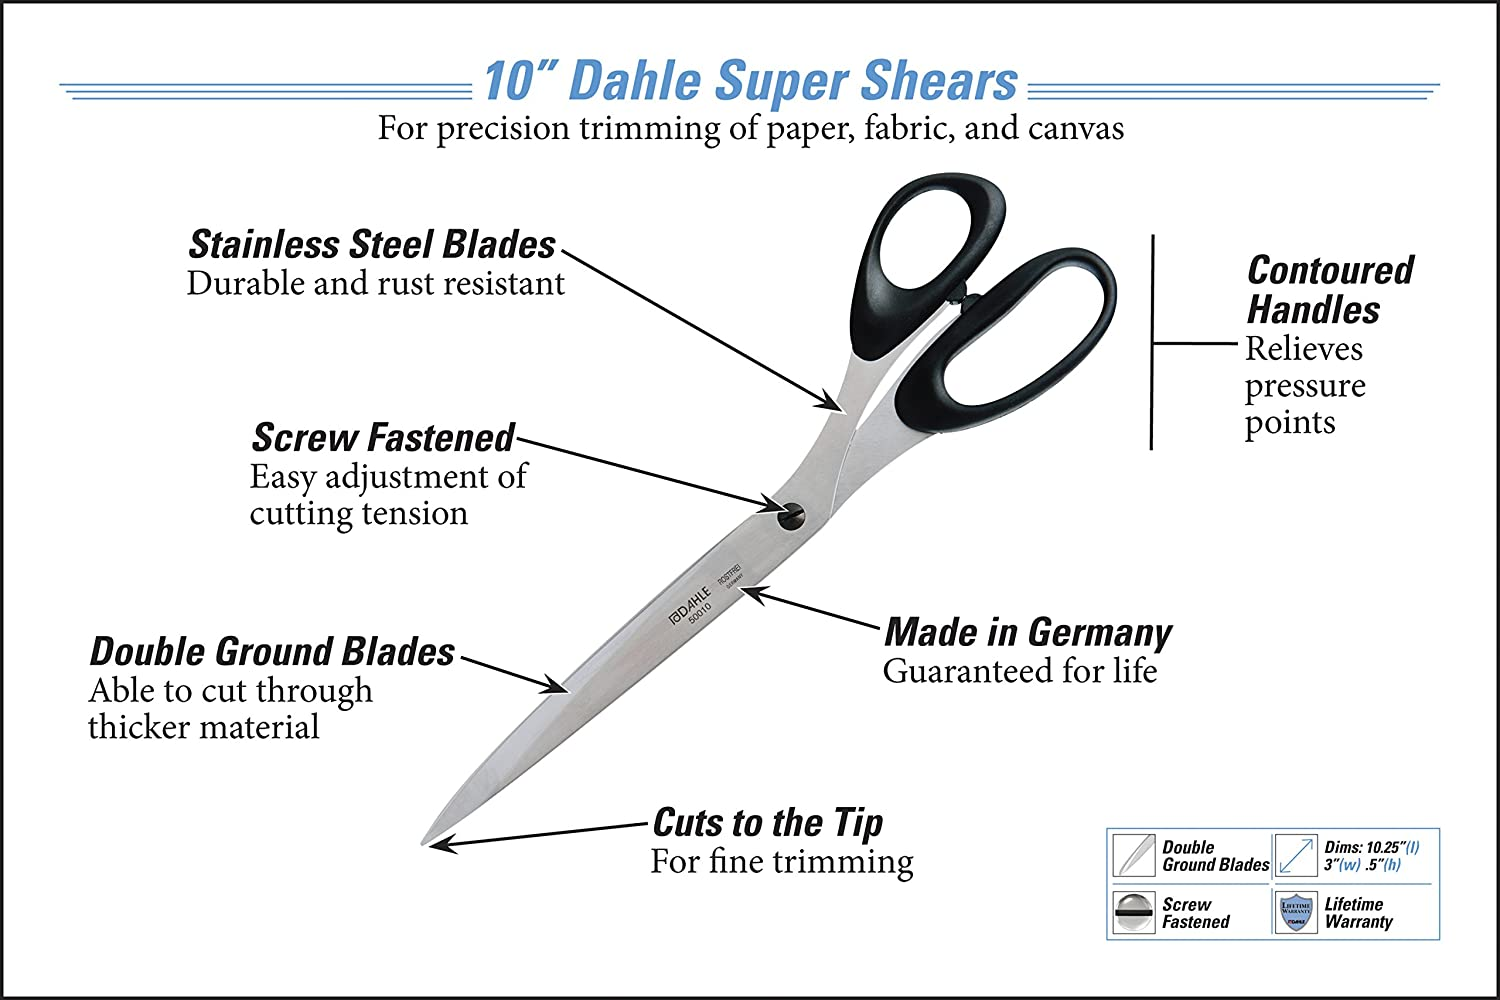 Dahle super super super Schere, Edelstahl, verstellbar Tension, Made in Germany, konturierten Griffen, Präzision double-ground Klingen, lebenslange Garantie B000KNBL8M | Die Qualität Und Die Verbraucher Zunächst